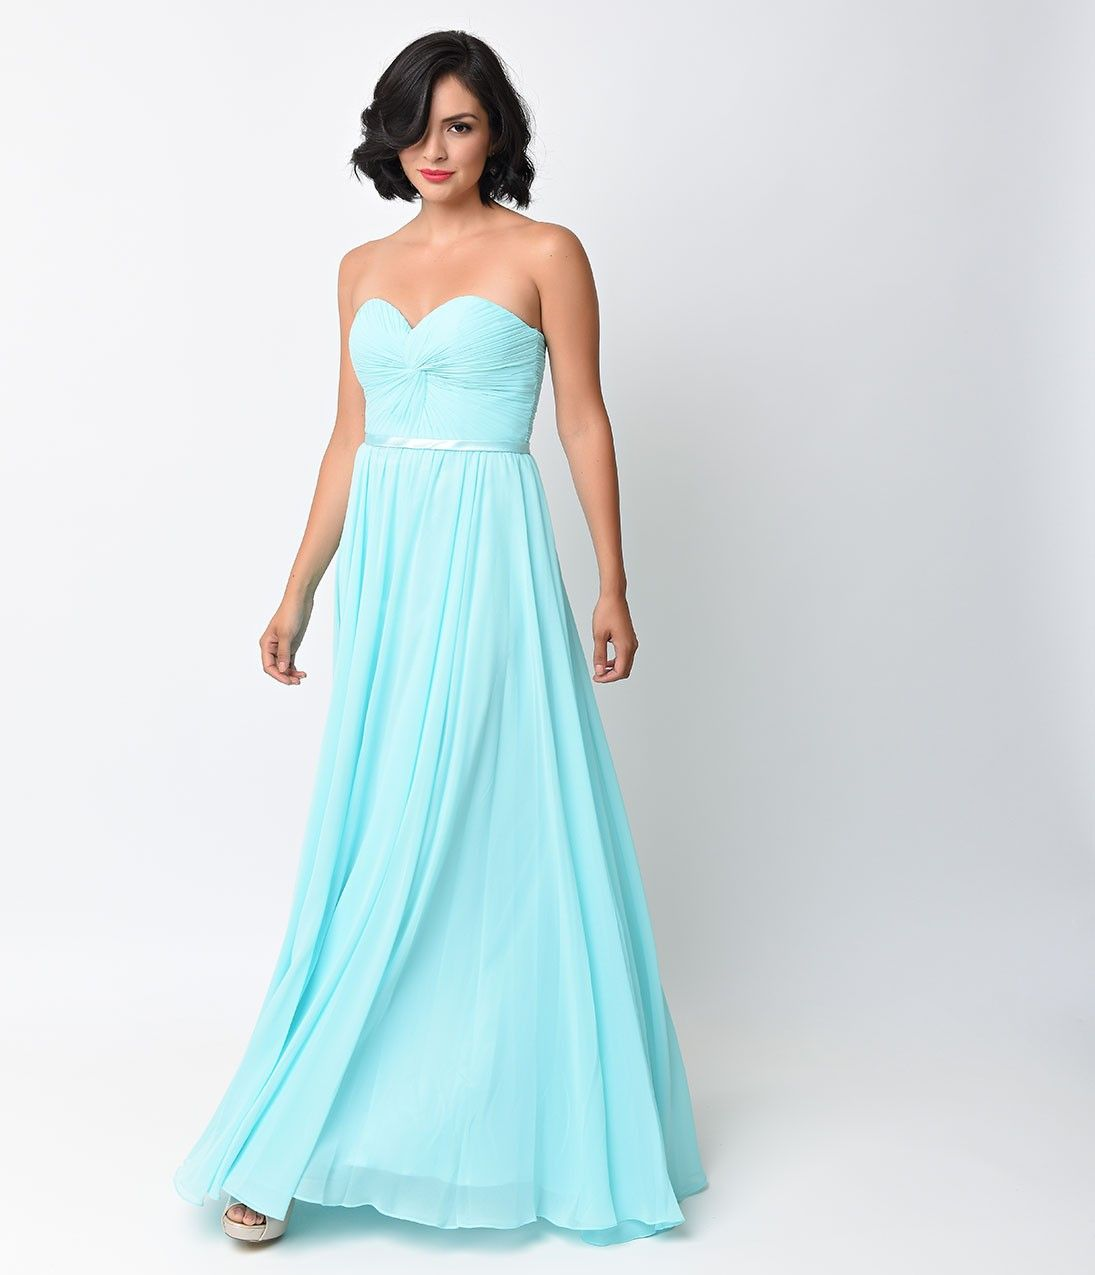 Magnificent Prom Dresses In Shreveport Elaboration - All Wedding ...